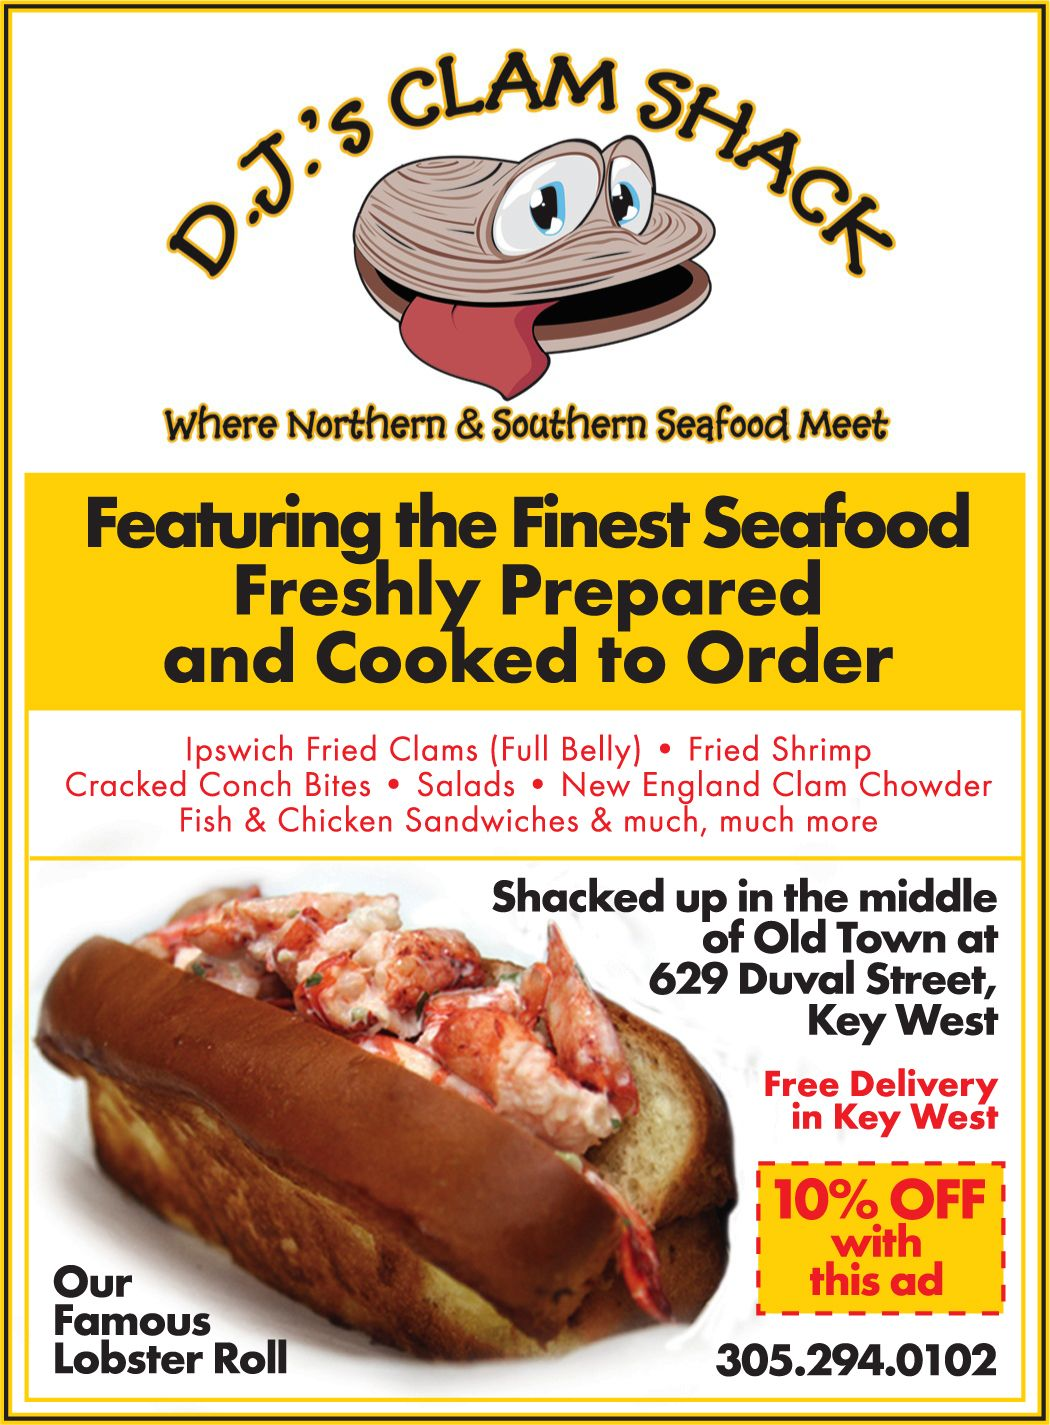 Djs clam shack with images travel eating foodie